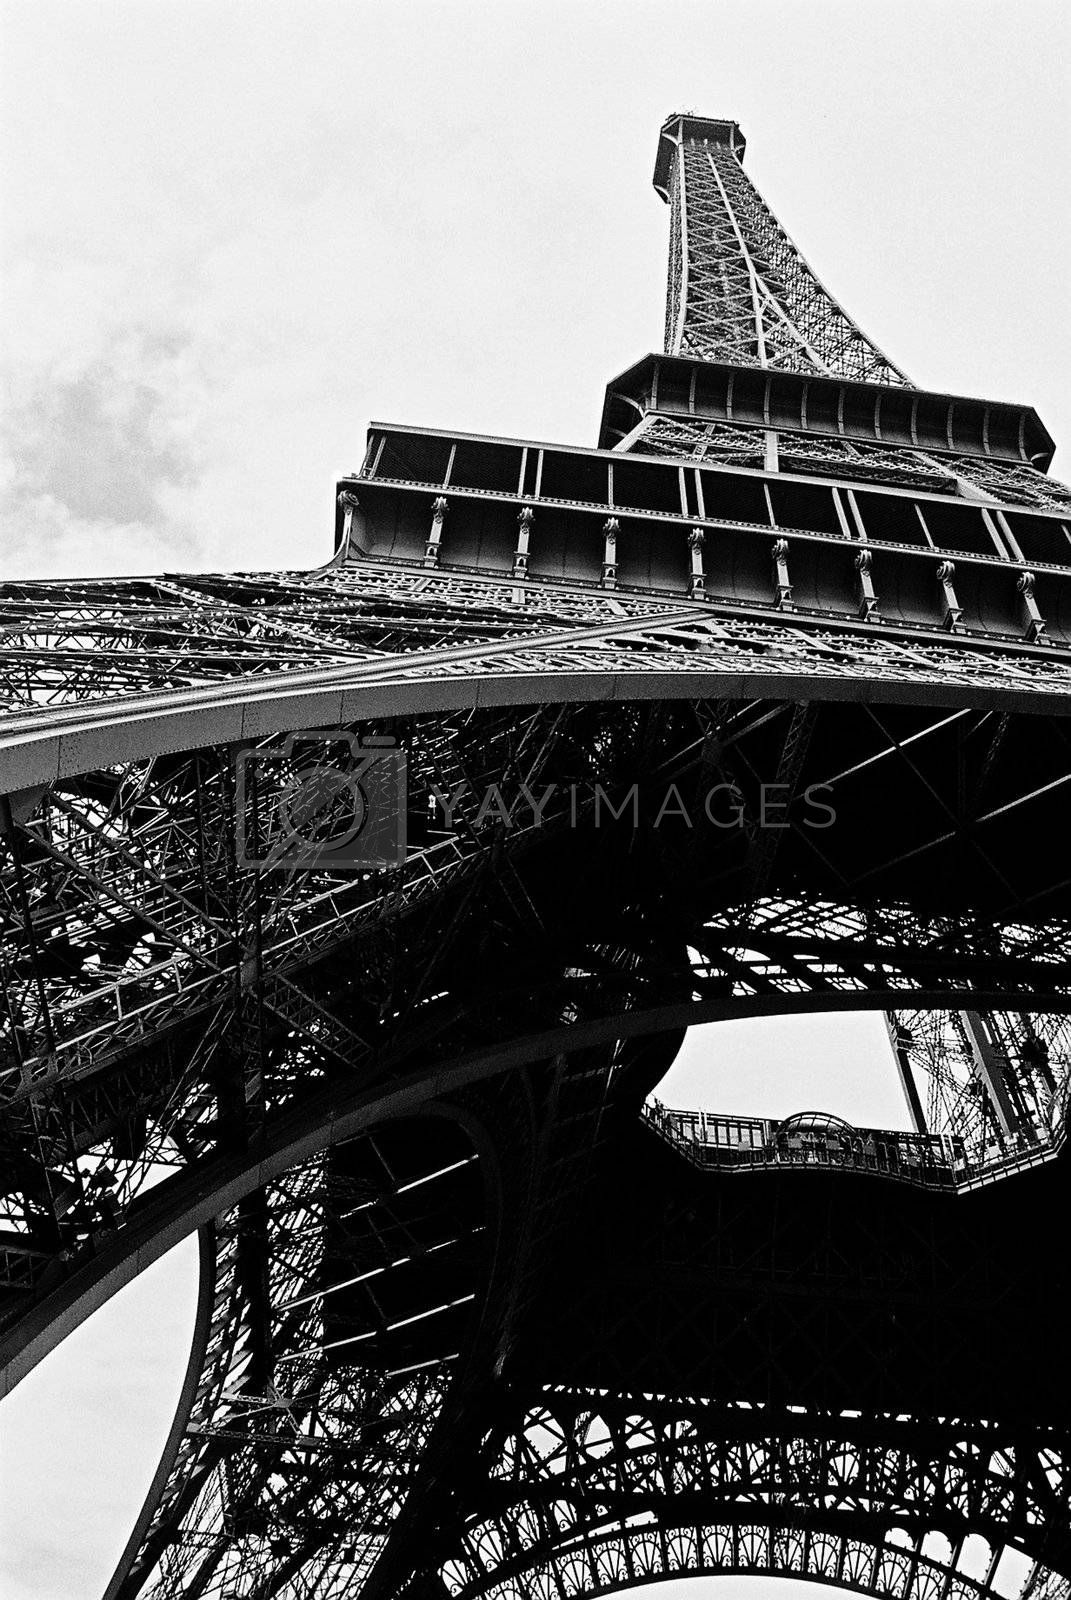 Black & white view of the Eiffel Tower in Paris